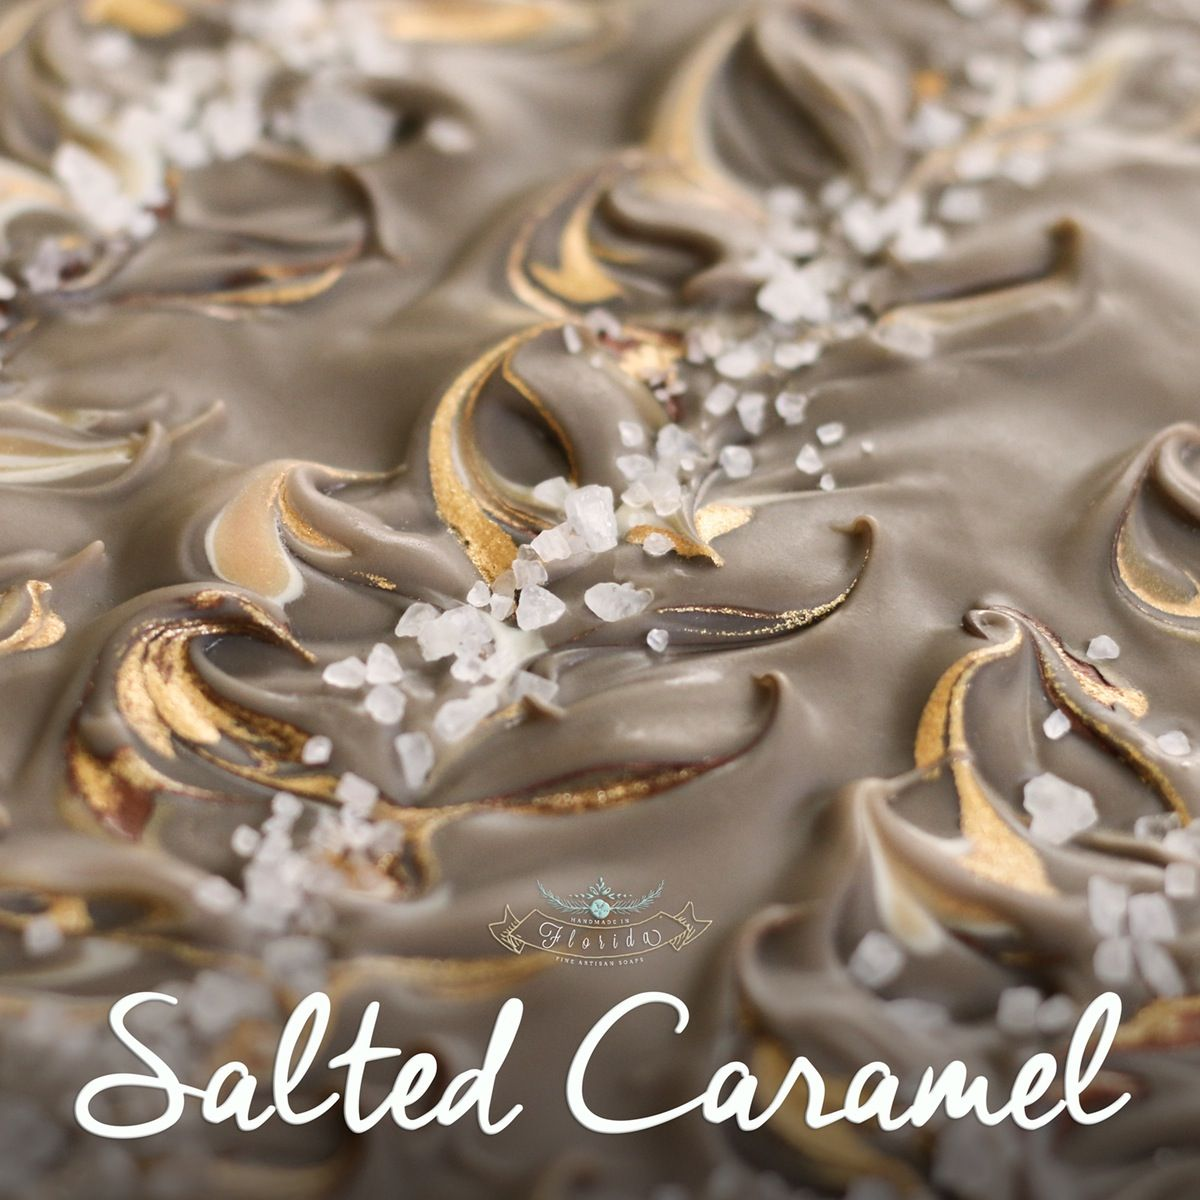 Rich and creamy caramel with a sprinkling of European sea salt...yummm More than just a pretty bar, our cold process soaps are made-from-scratch us...